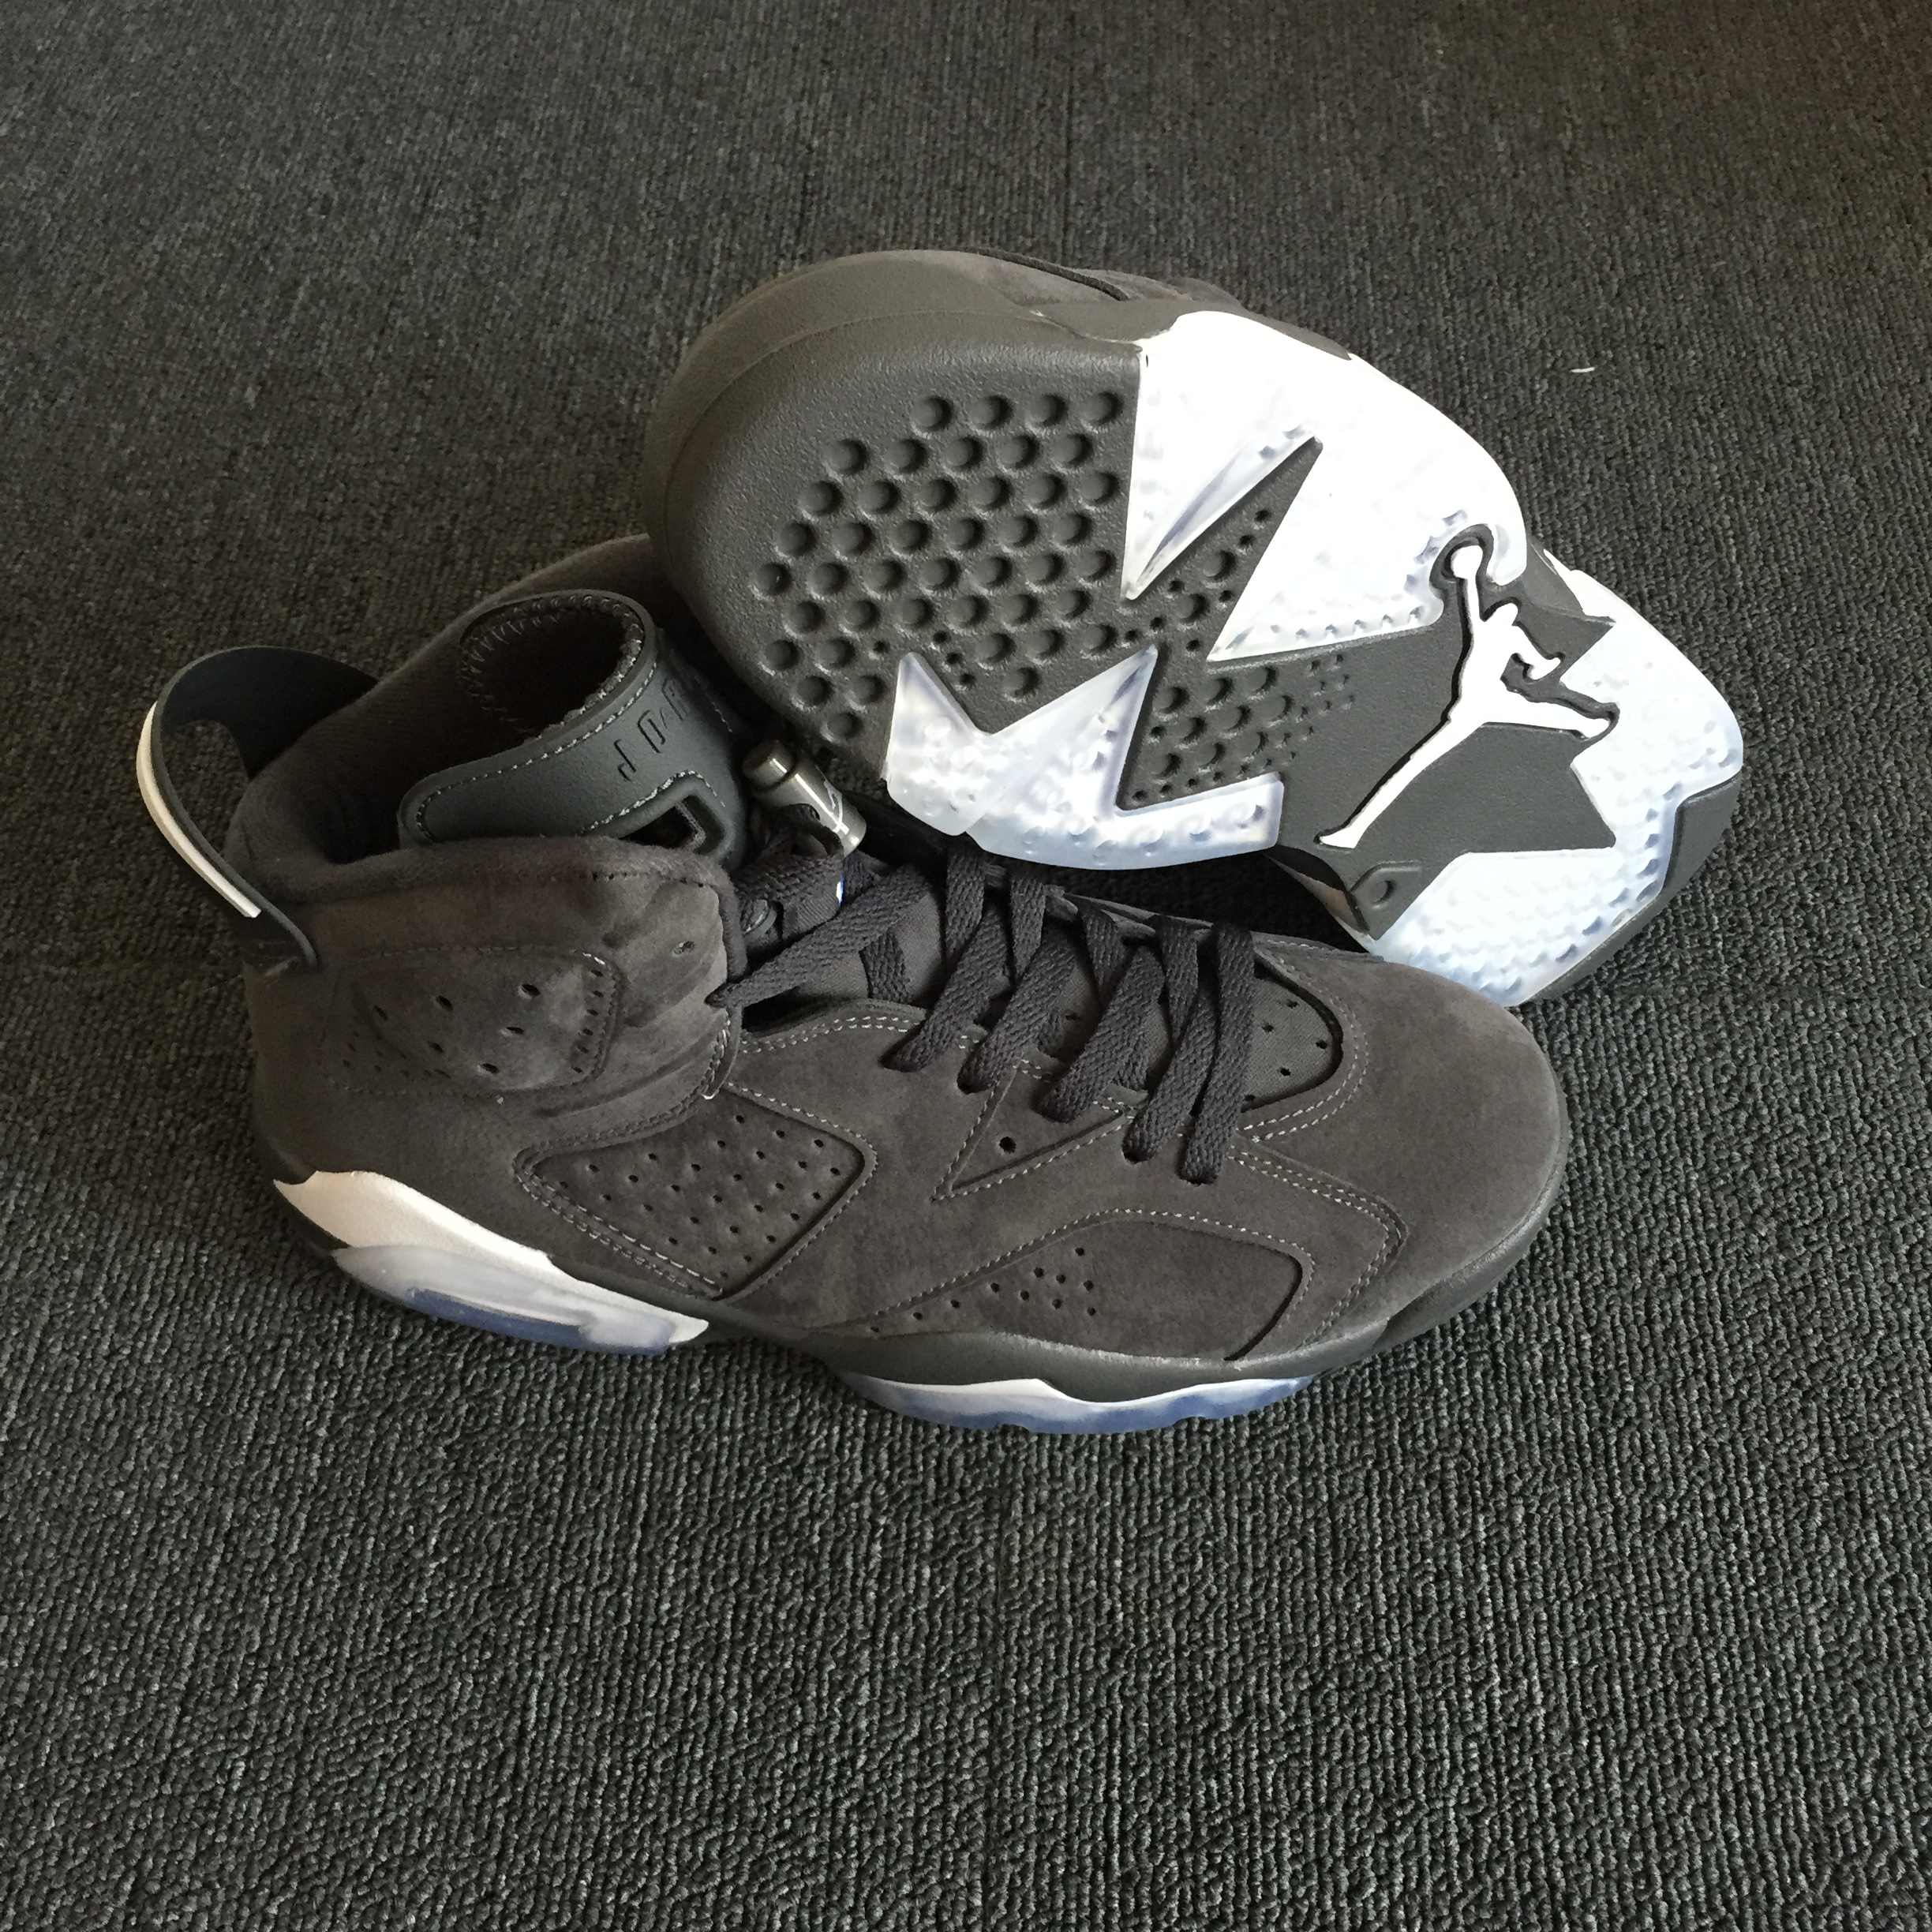 New Men Air Jordan 6 Deek Skin 3M Carbon Grey Shoes